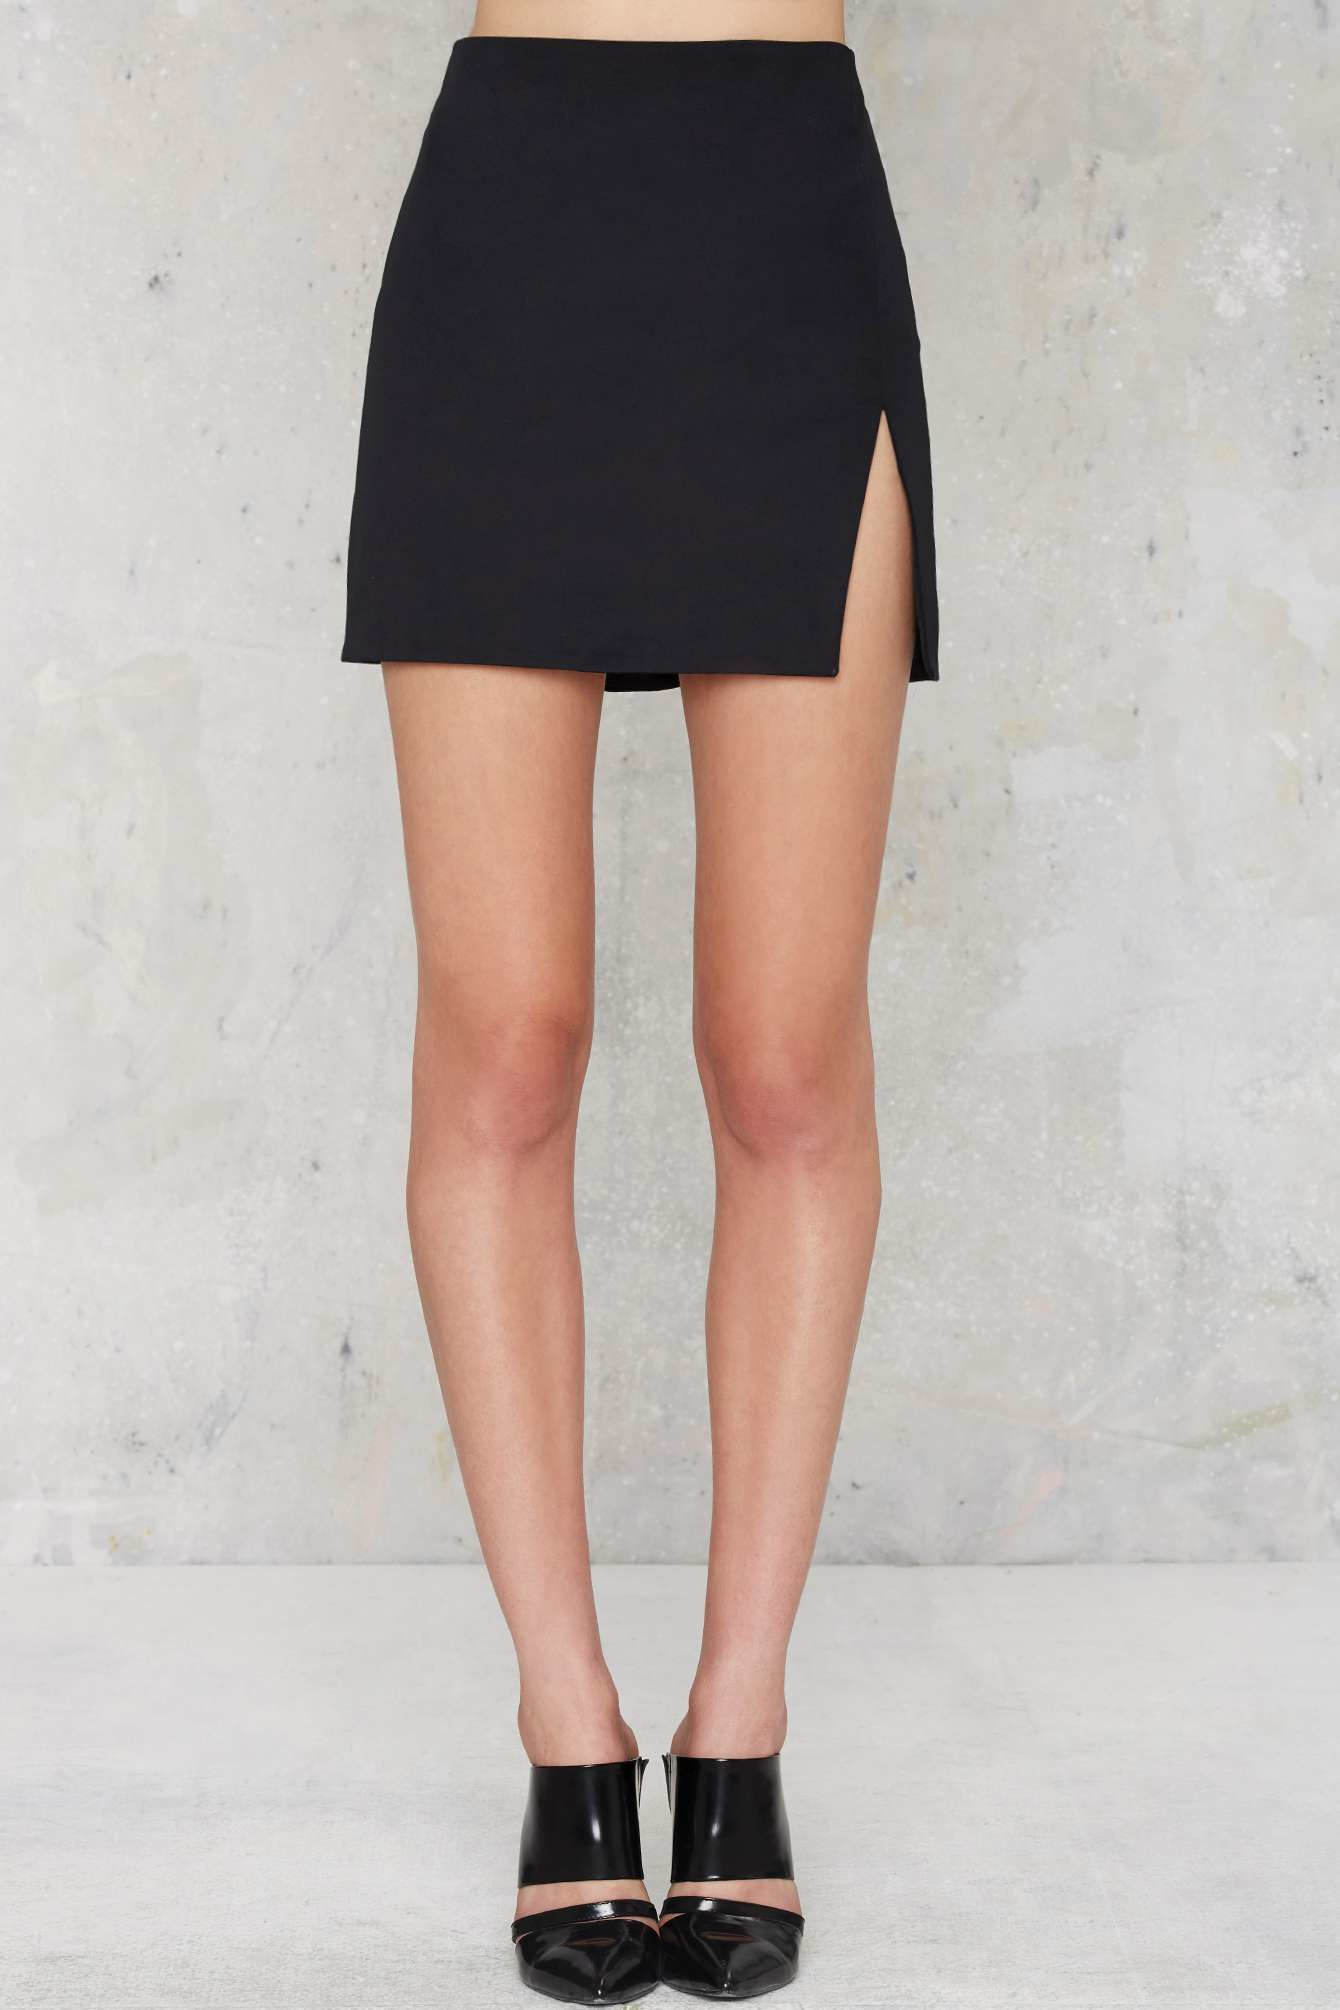 Nasty gal Slit Or Miss Mini Skirt in Black | Lyst